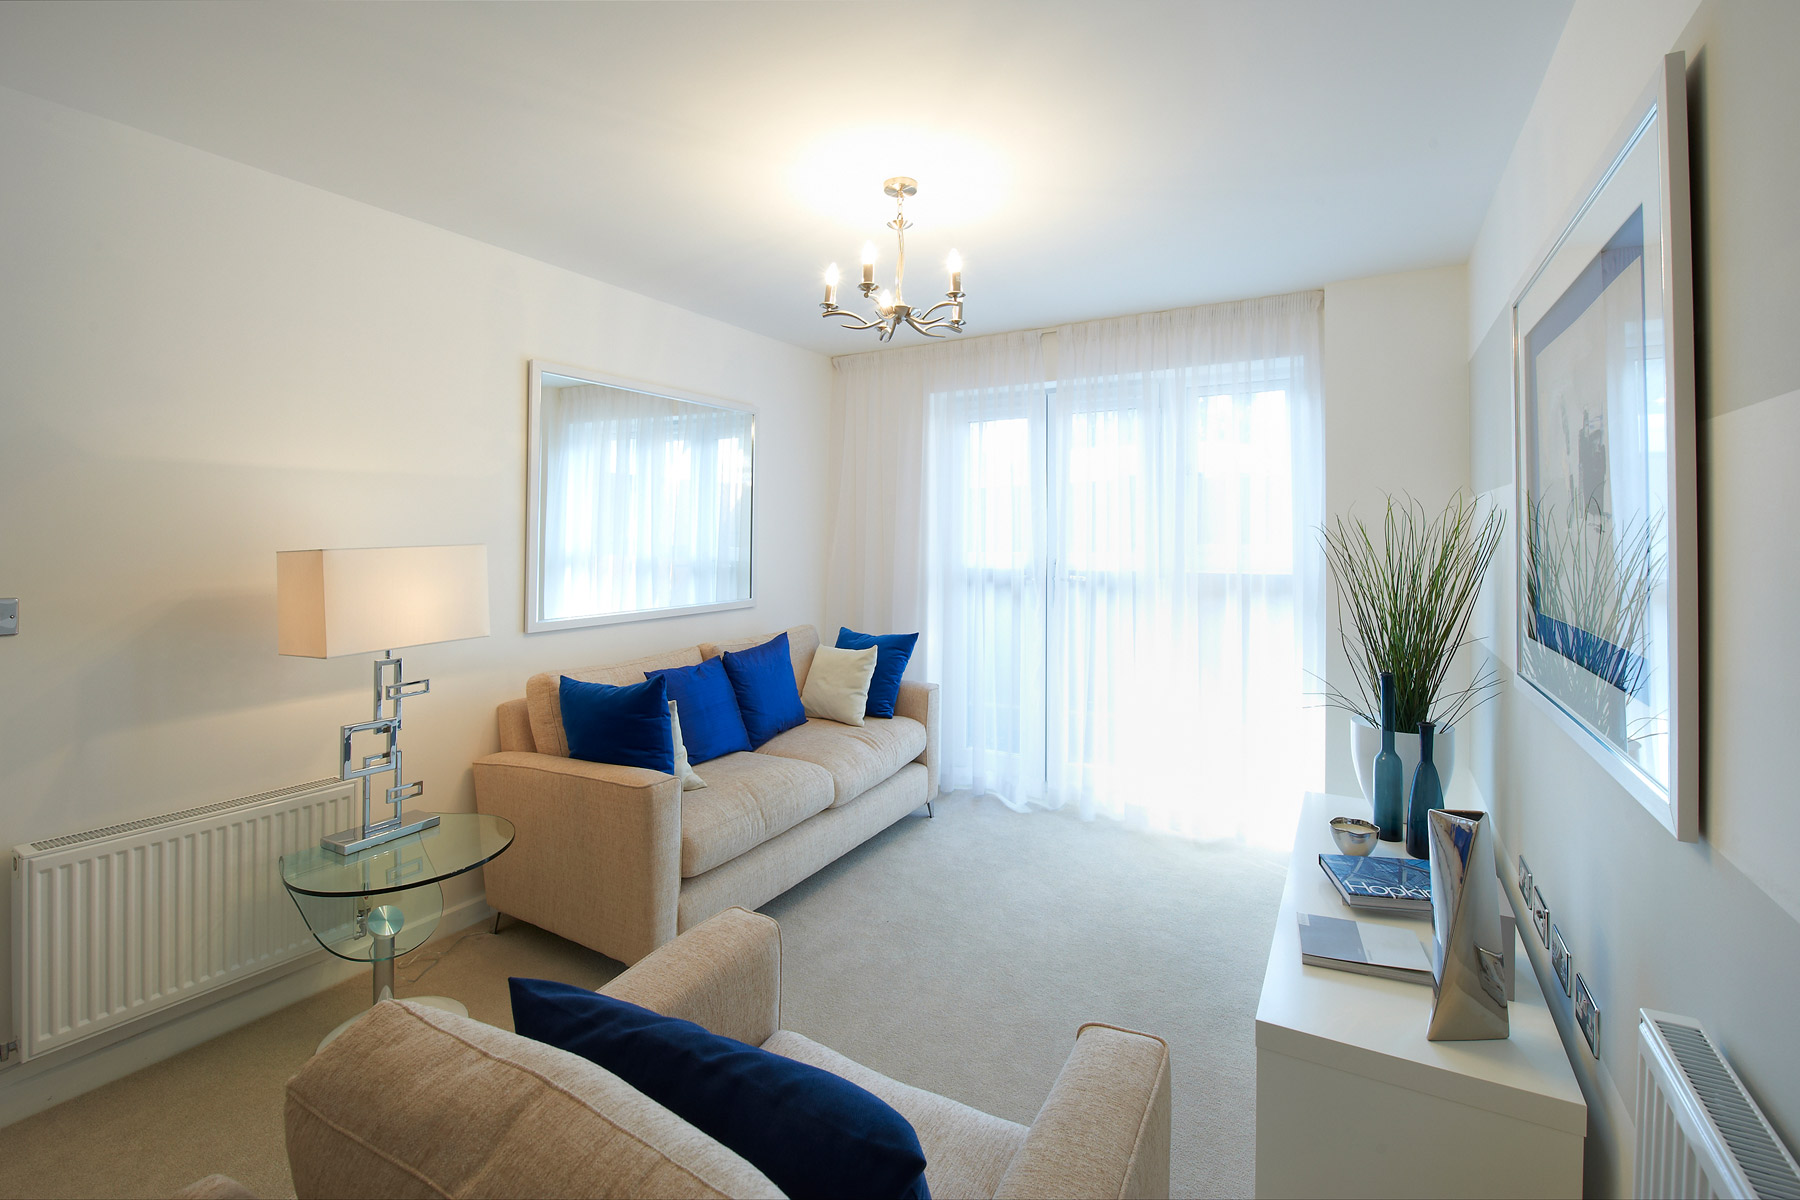 A typical Taylor Wimpey apartment living area.